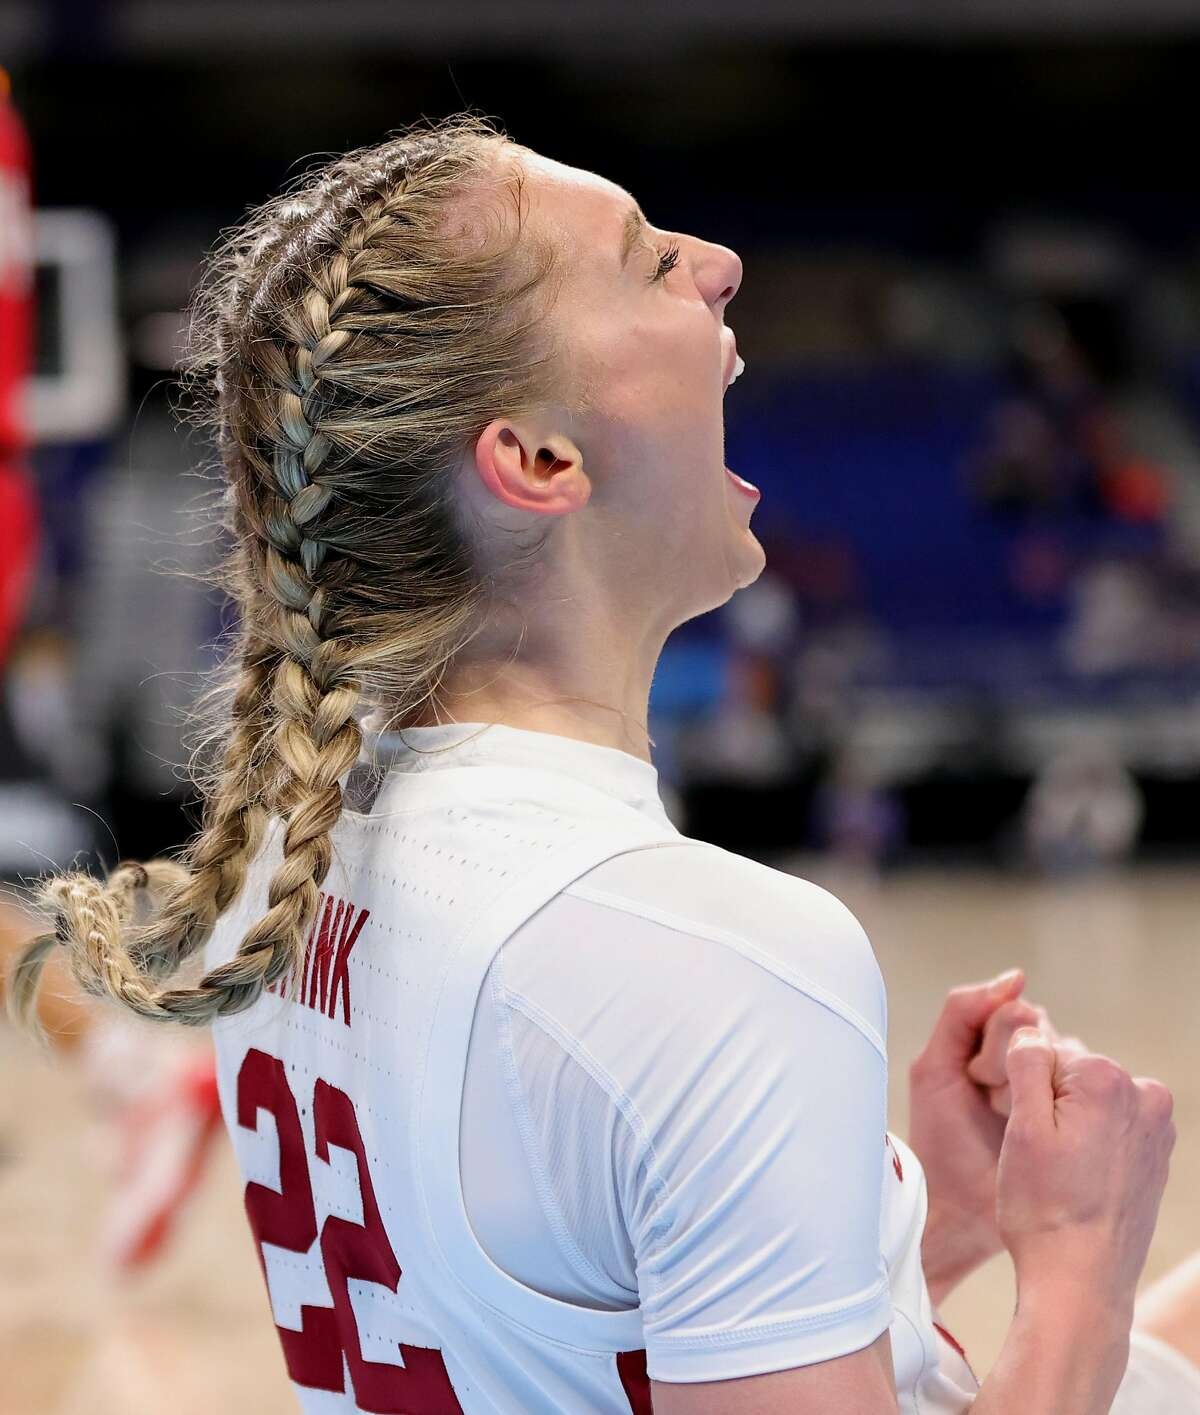 SAN ANTONIO, TEXAS - MARCH 30: Cameron Brink #22 of the Stanford Cardinal reacts during the first half against the Louisville Cardinals in the Elite Eight round of the NCAA Women's Basketball Tournament at the Alamodome on March 30, 2021 in San Antonio, Texas. (Photo by Carmen Mandato/Getty Images)